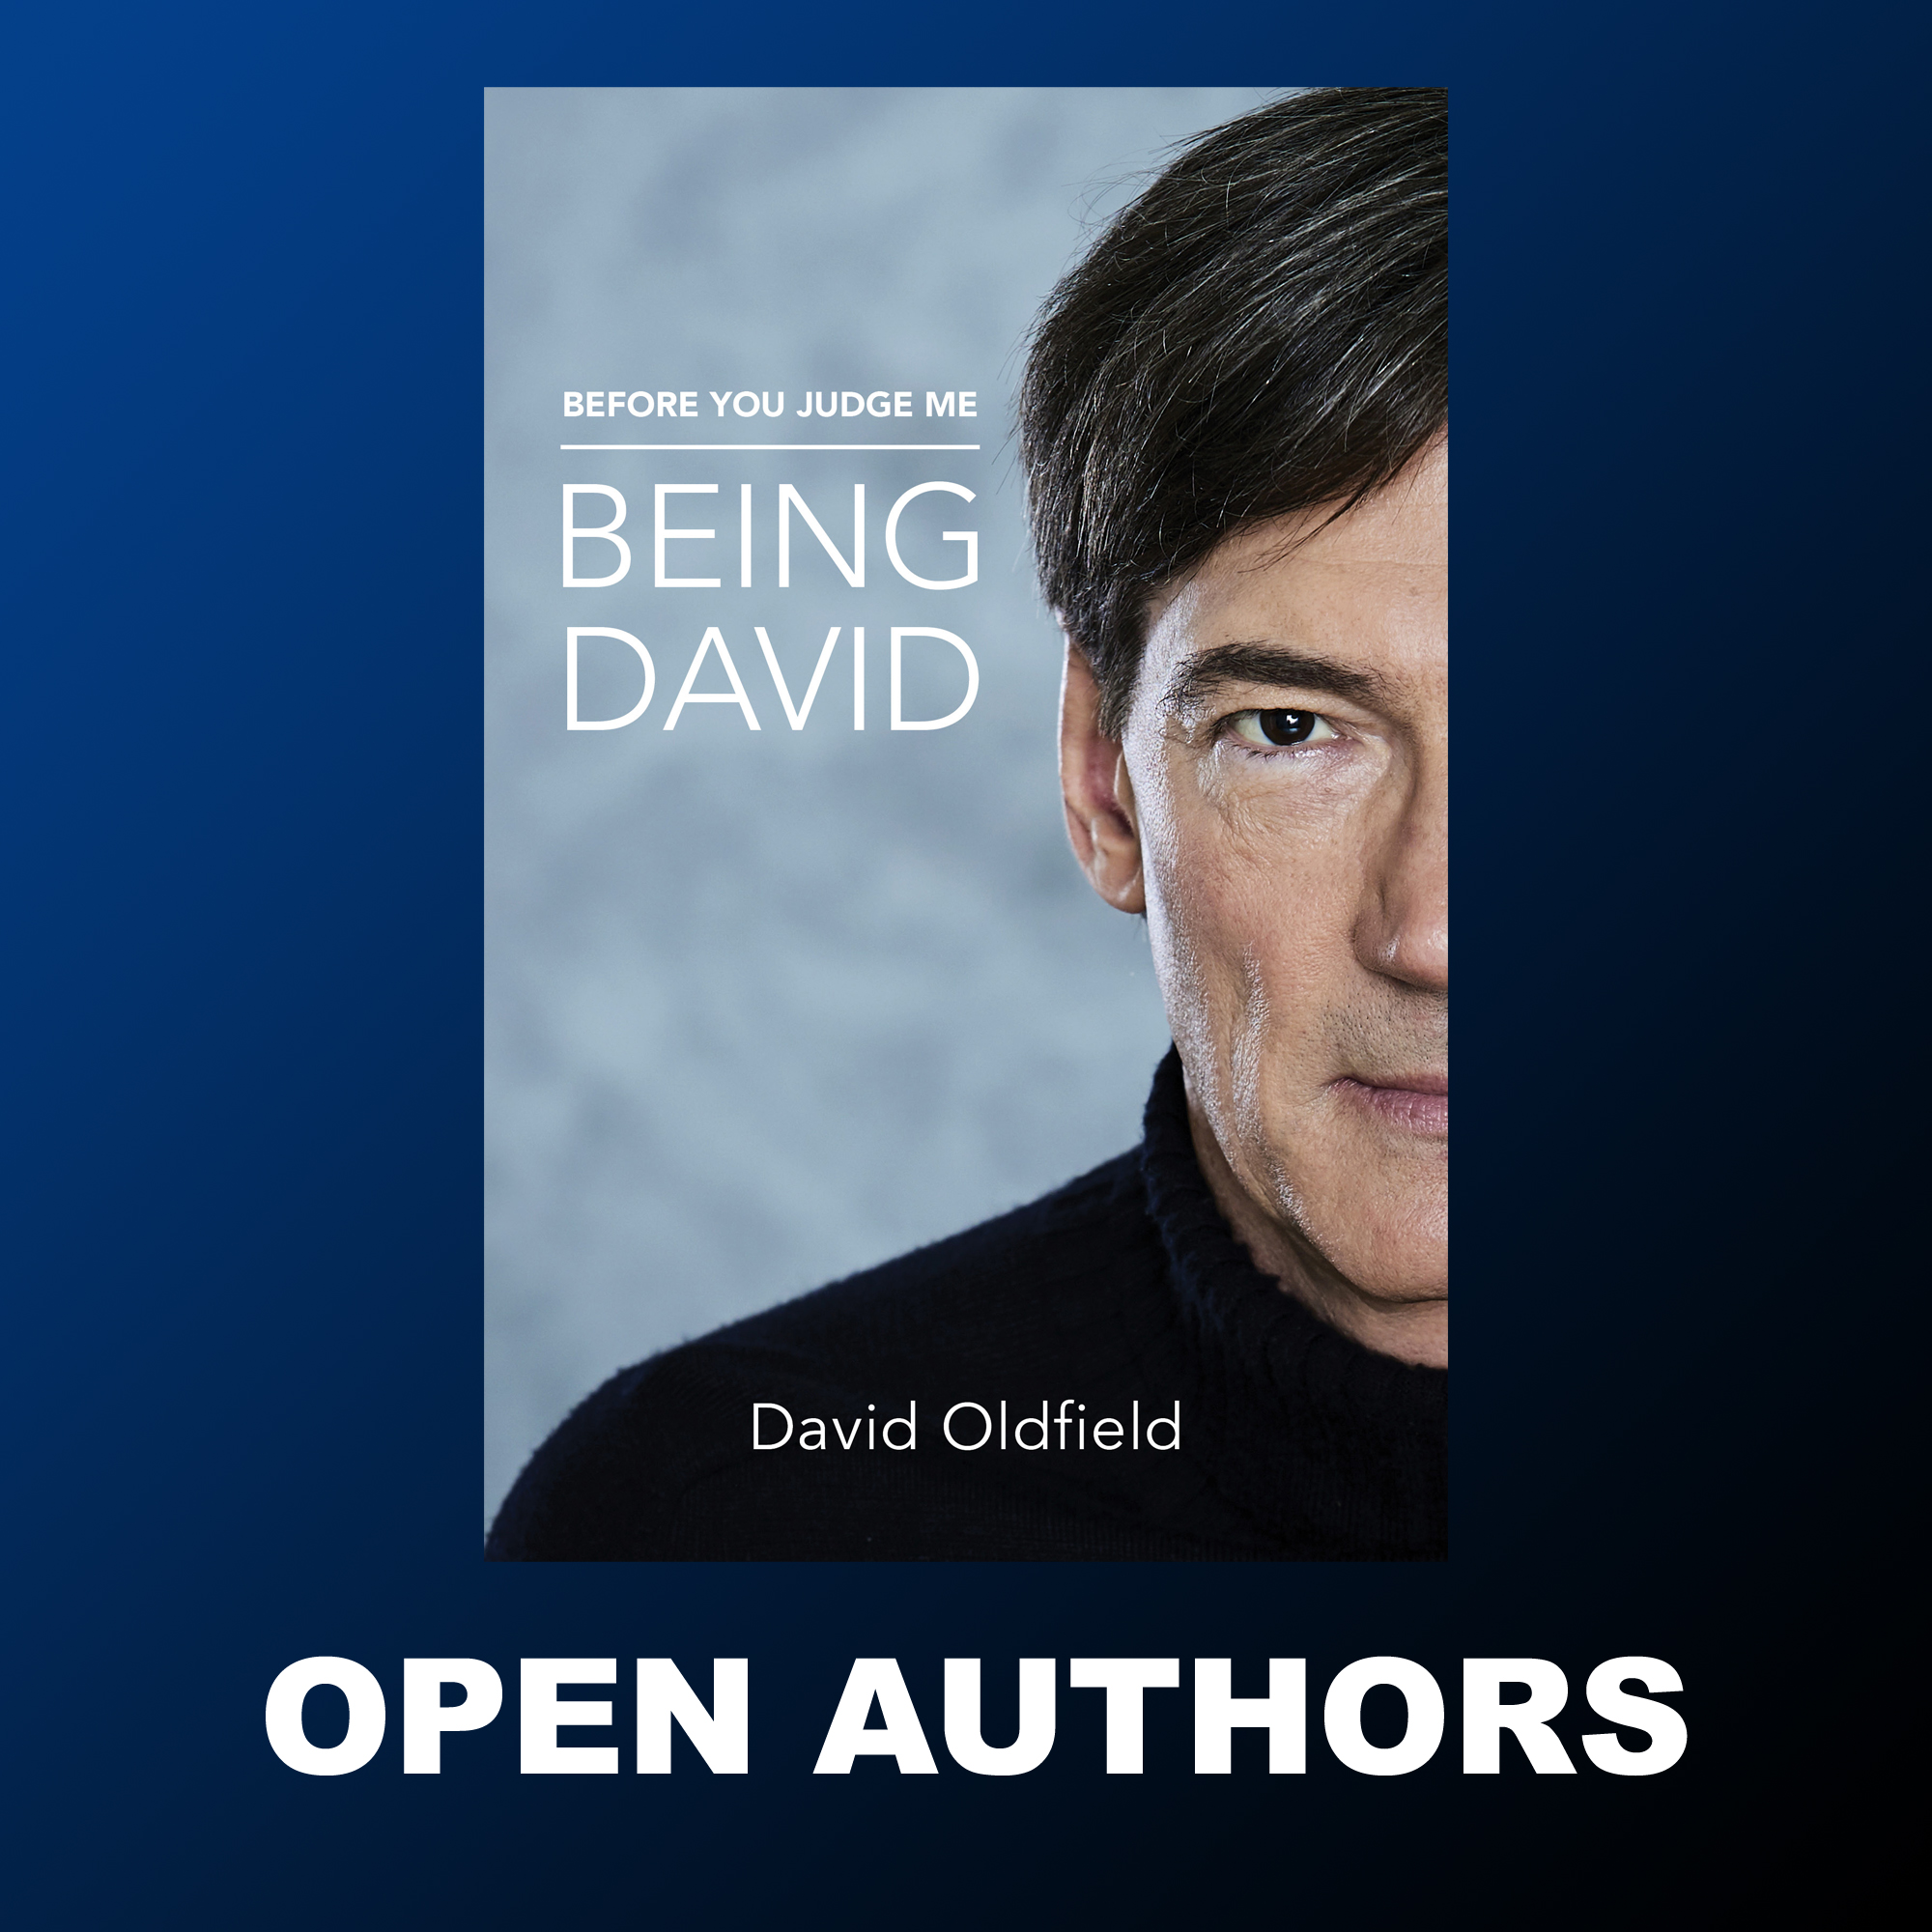 David Oldfield - Before You Judge Me: Being David